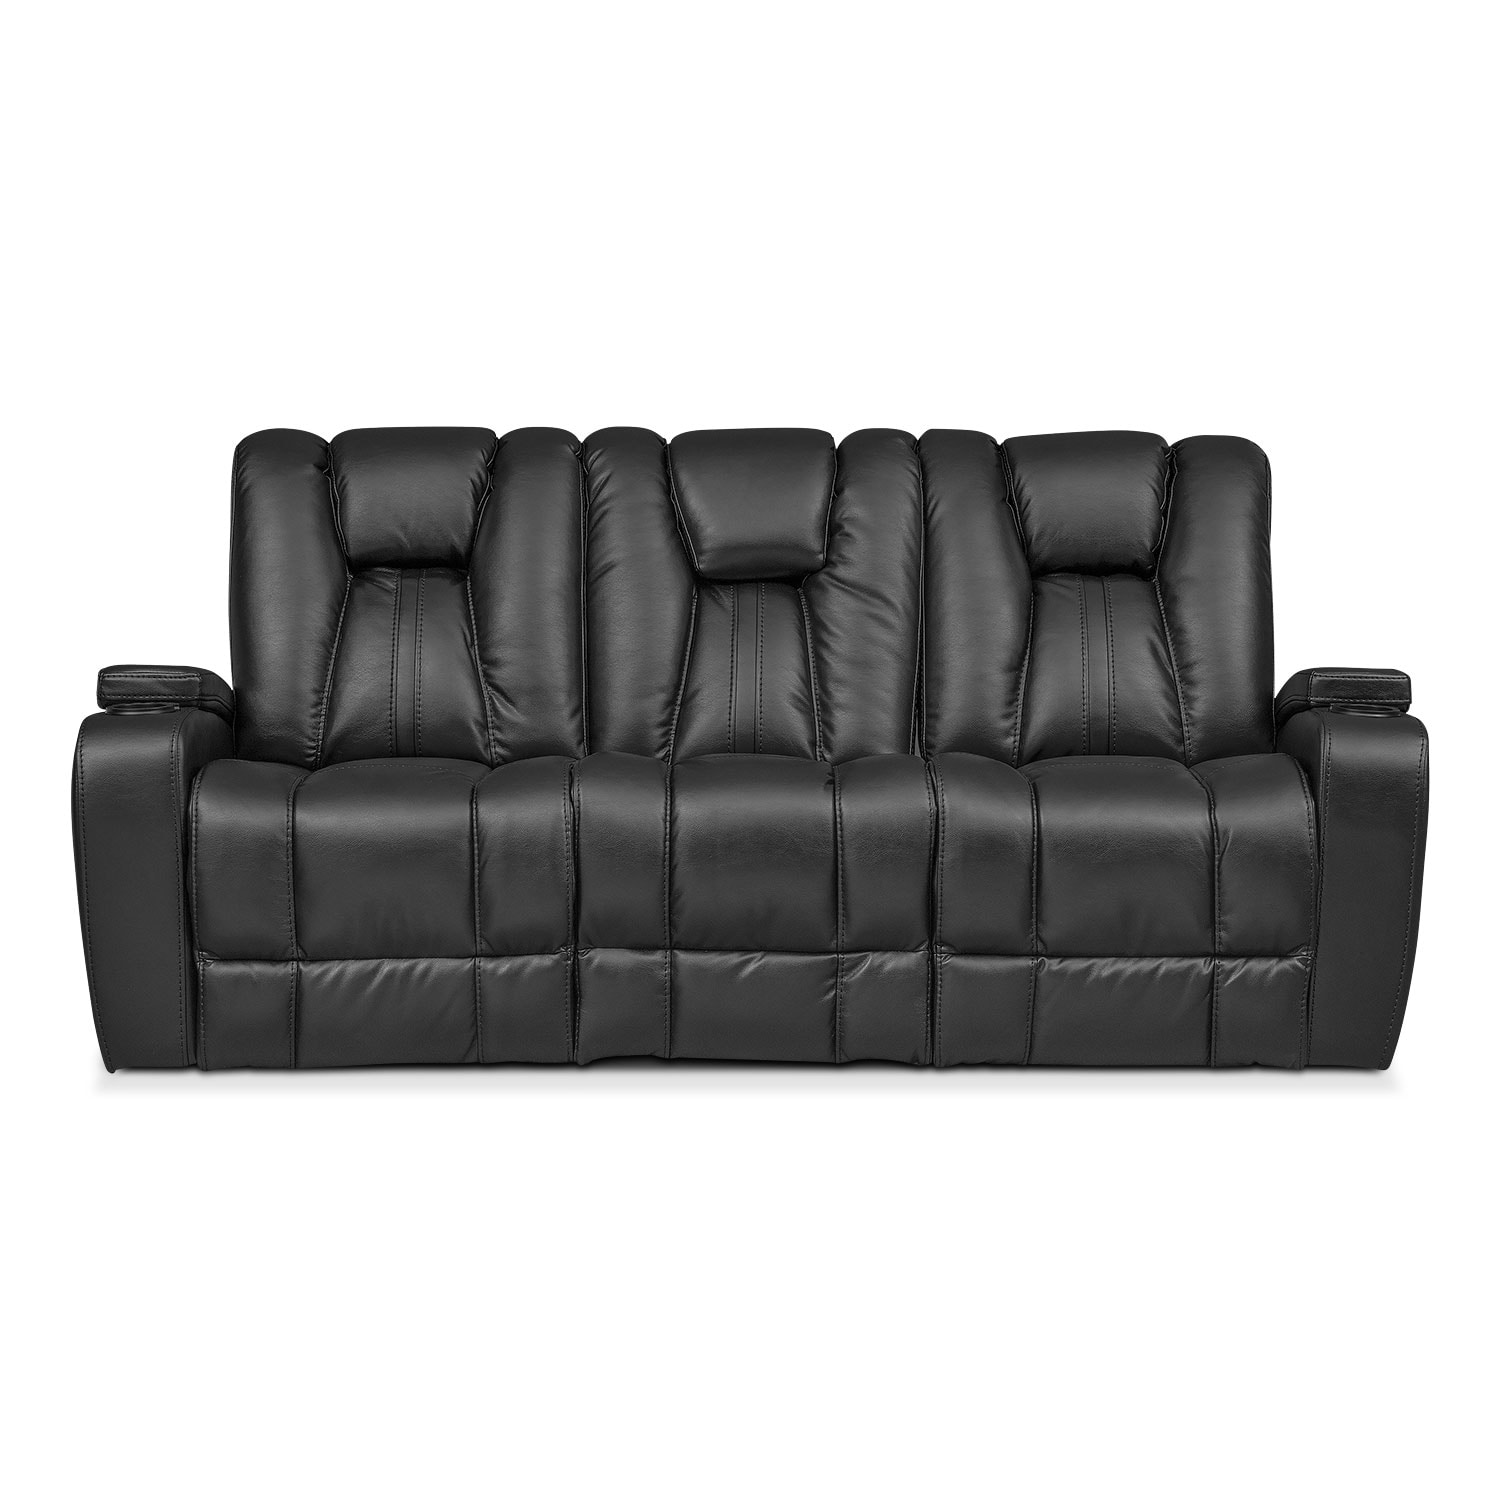 Pulsar Dual Power Reclining Sofa   Black By One80